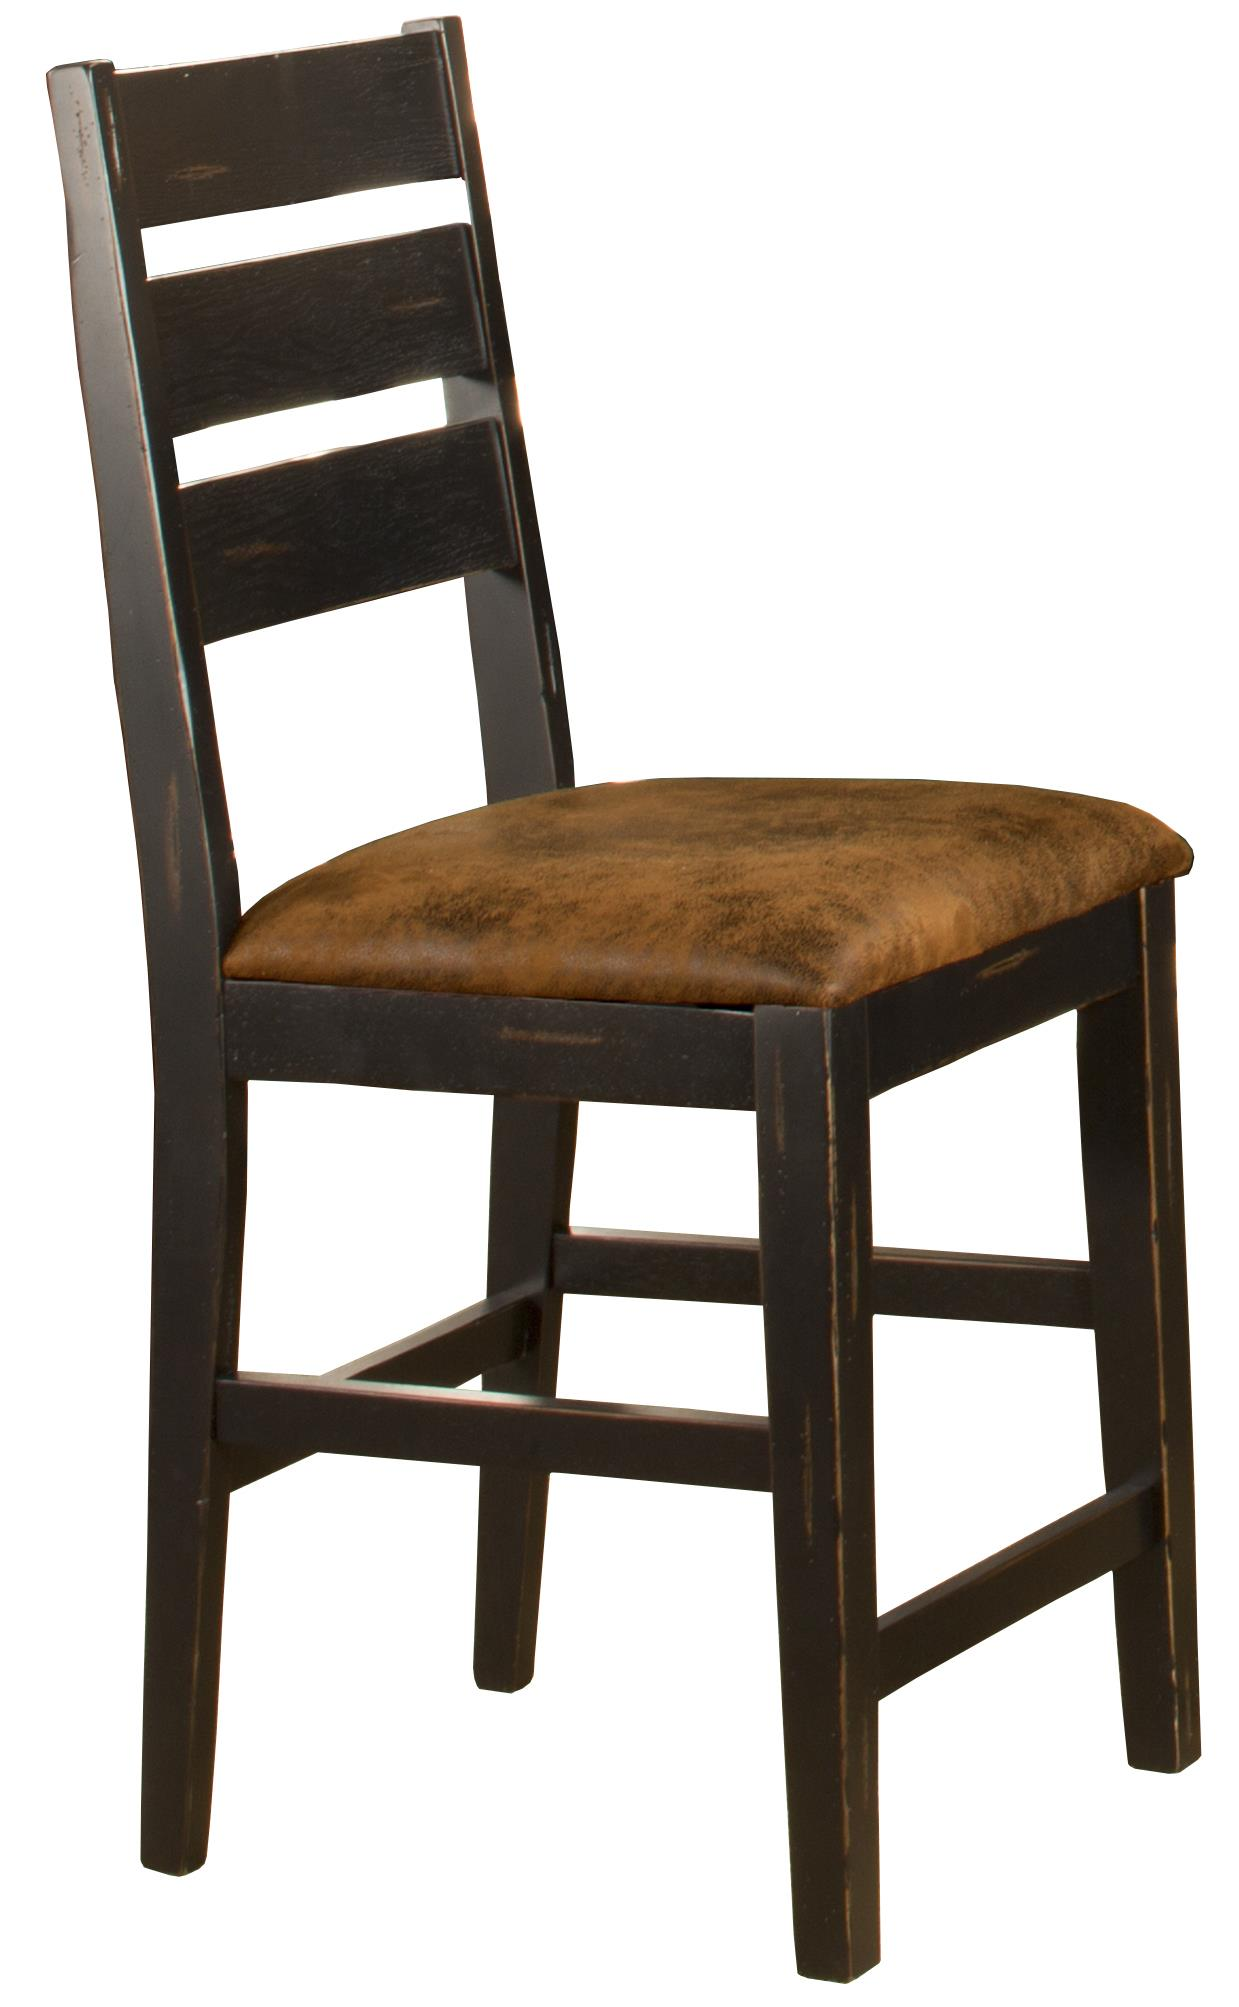 Hillsdale Killarney Ladder Back Counter Height Stools - Item Number: 5381-823